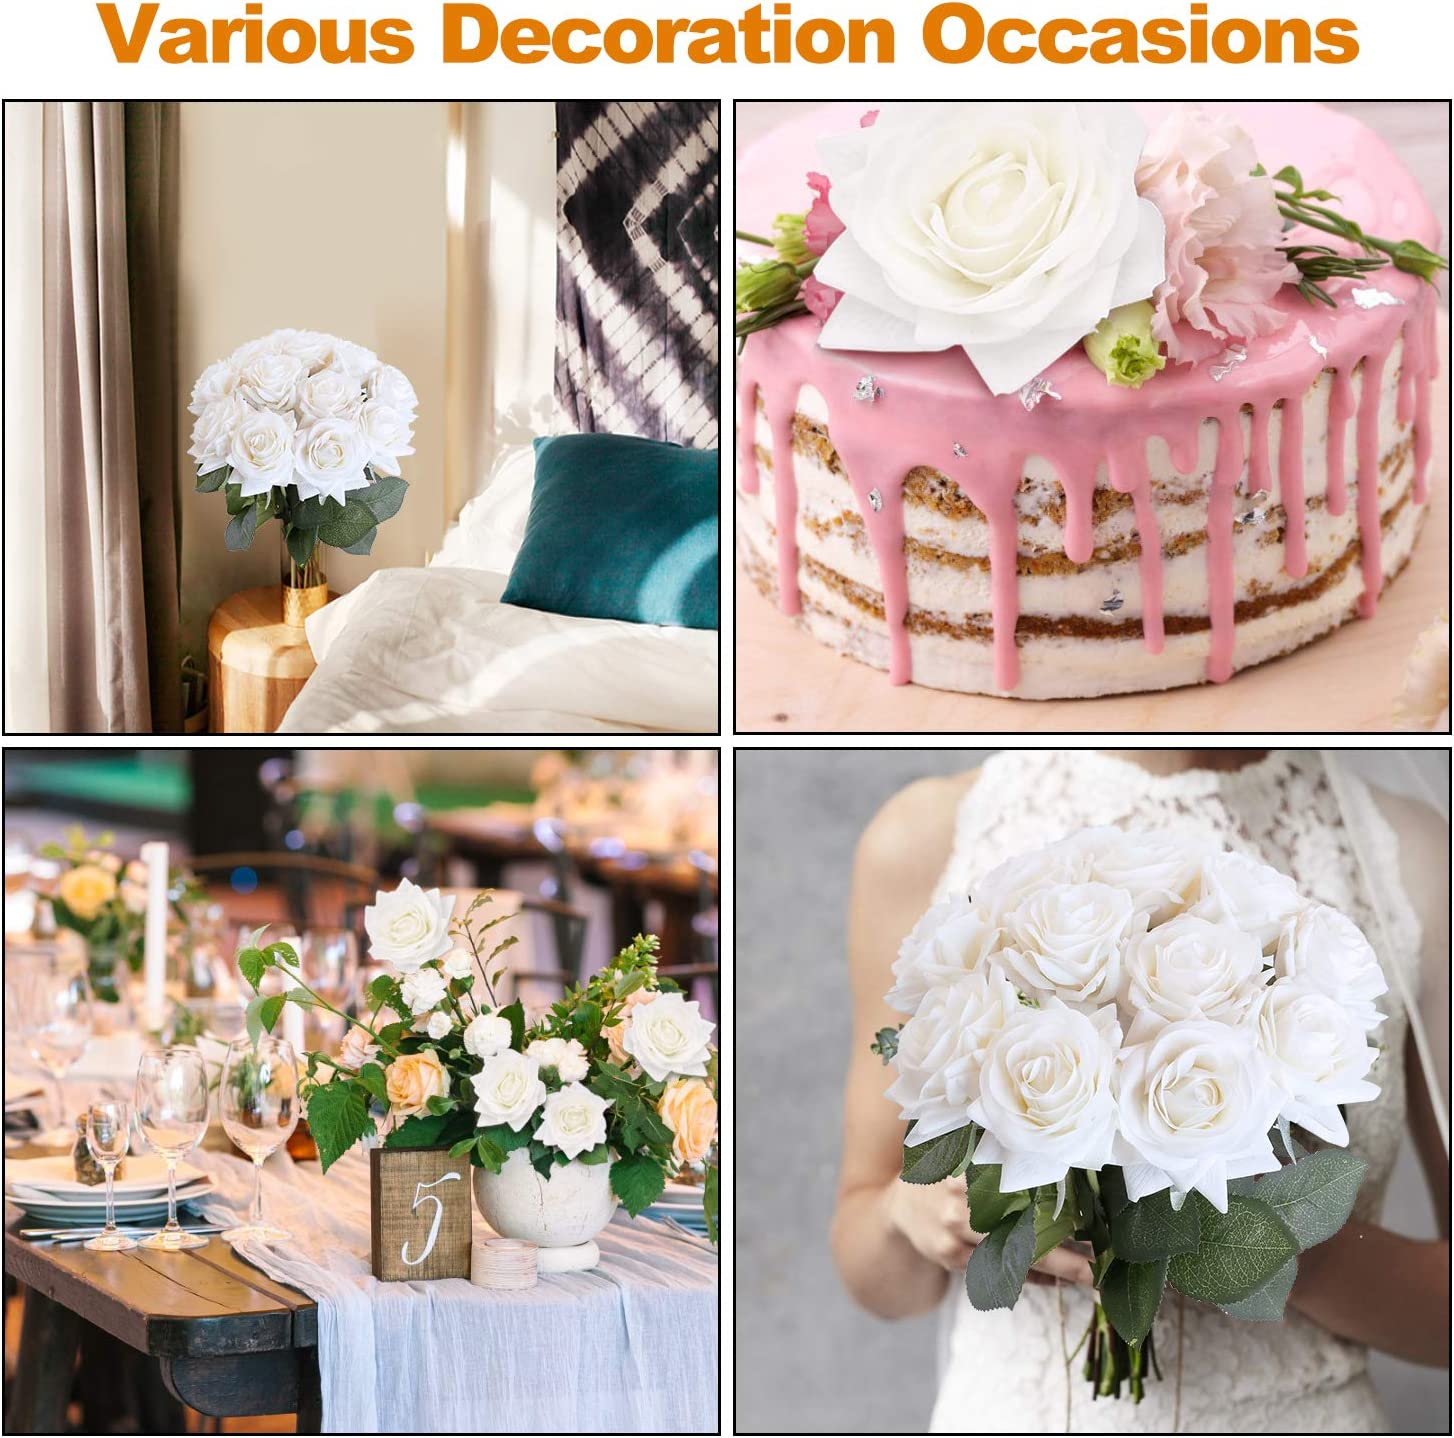 Party and Home Decoration Champagne 12pcs Real Touch Silk Rose Flowers DIY for Wedding DIGIROOT Artificial Flowers Fake Rose